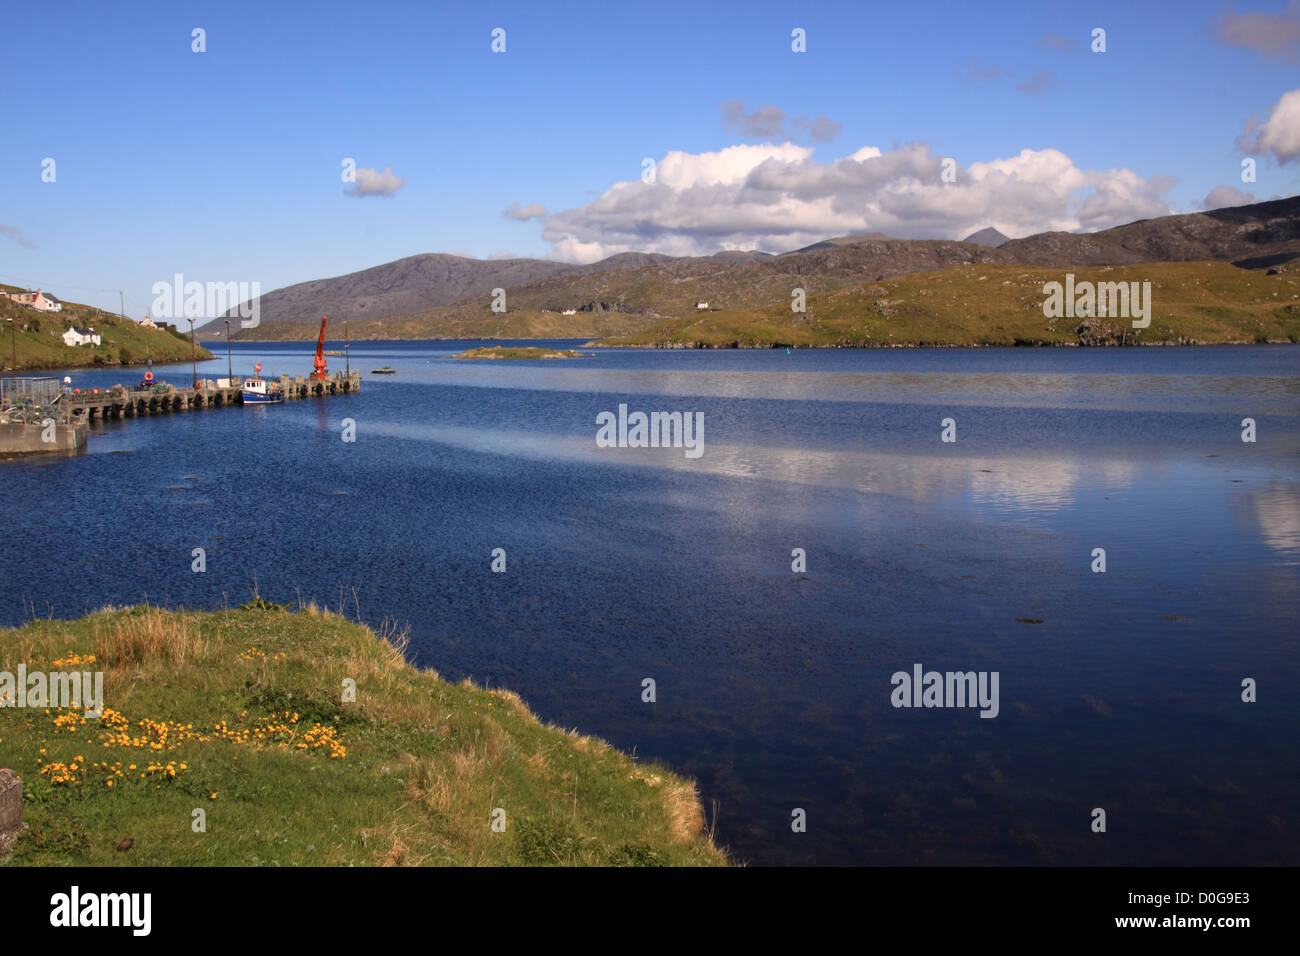 UK Scotland Western Isles Outer Hebrides Isle of Harris from the island of Scalpay - Stock Image